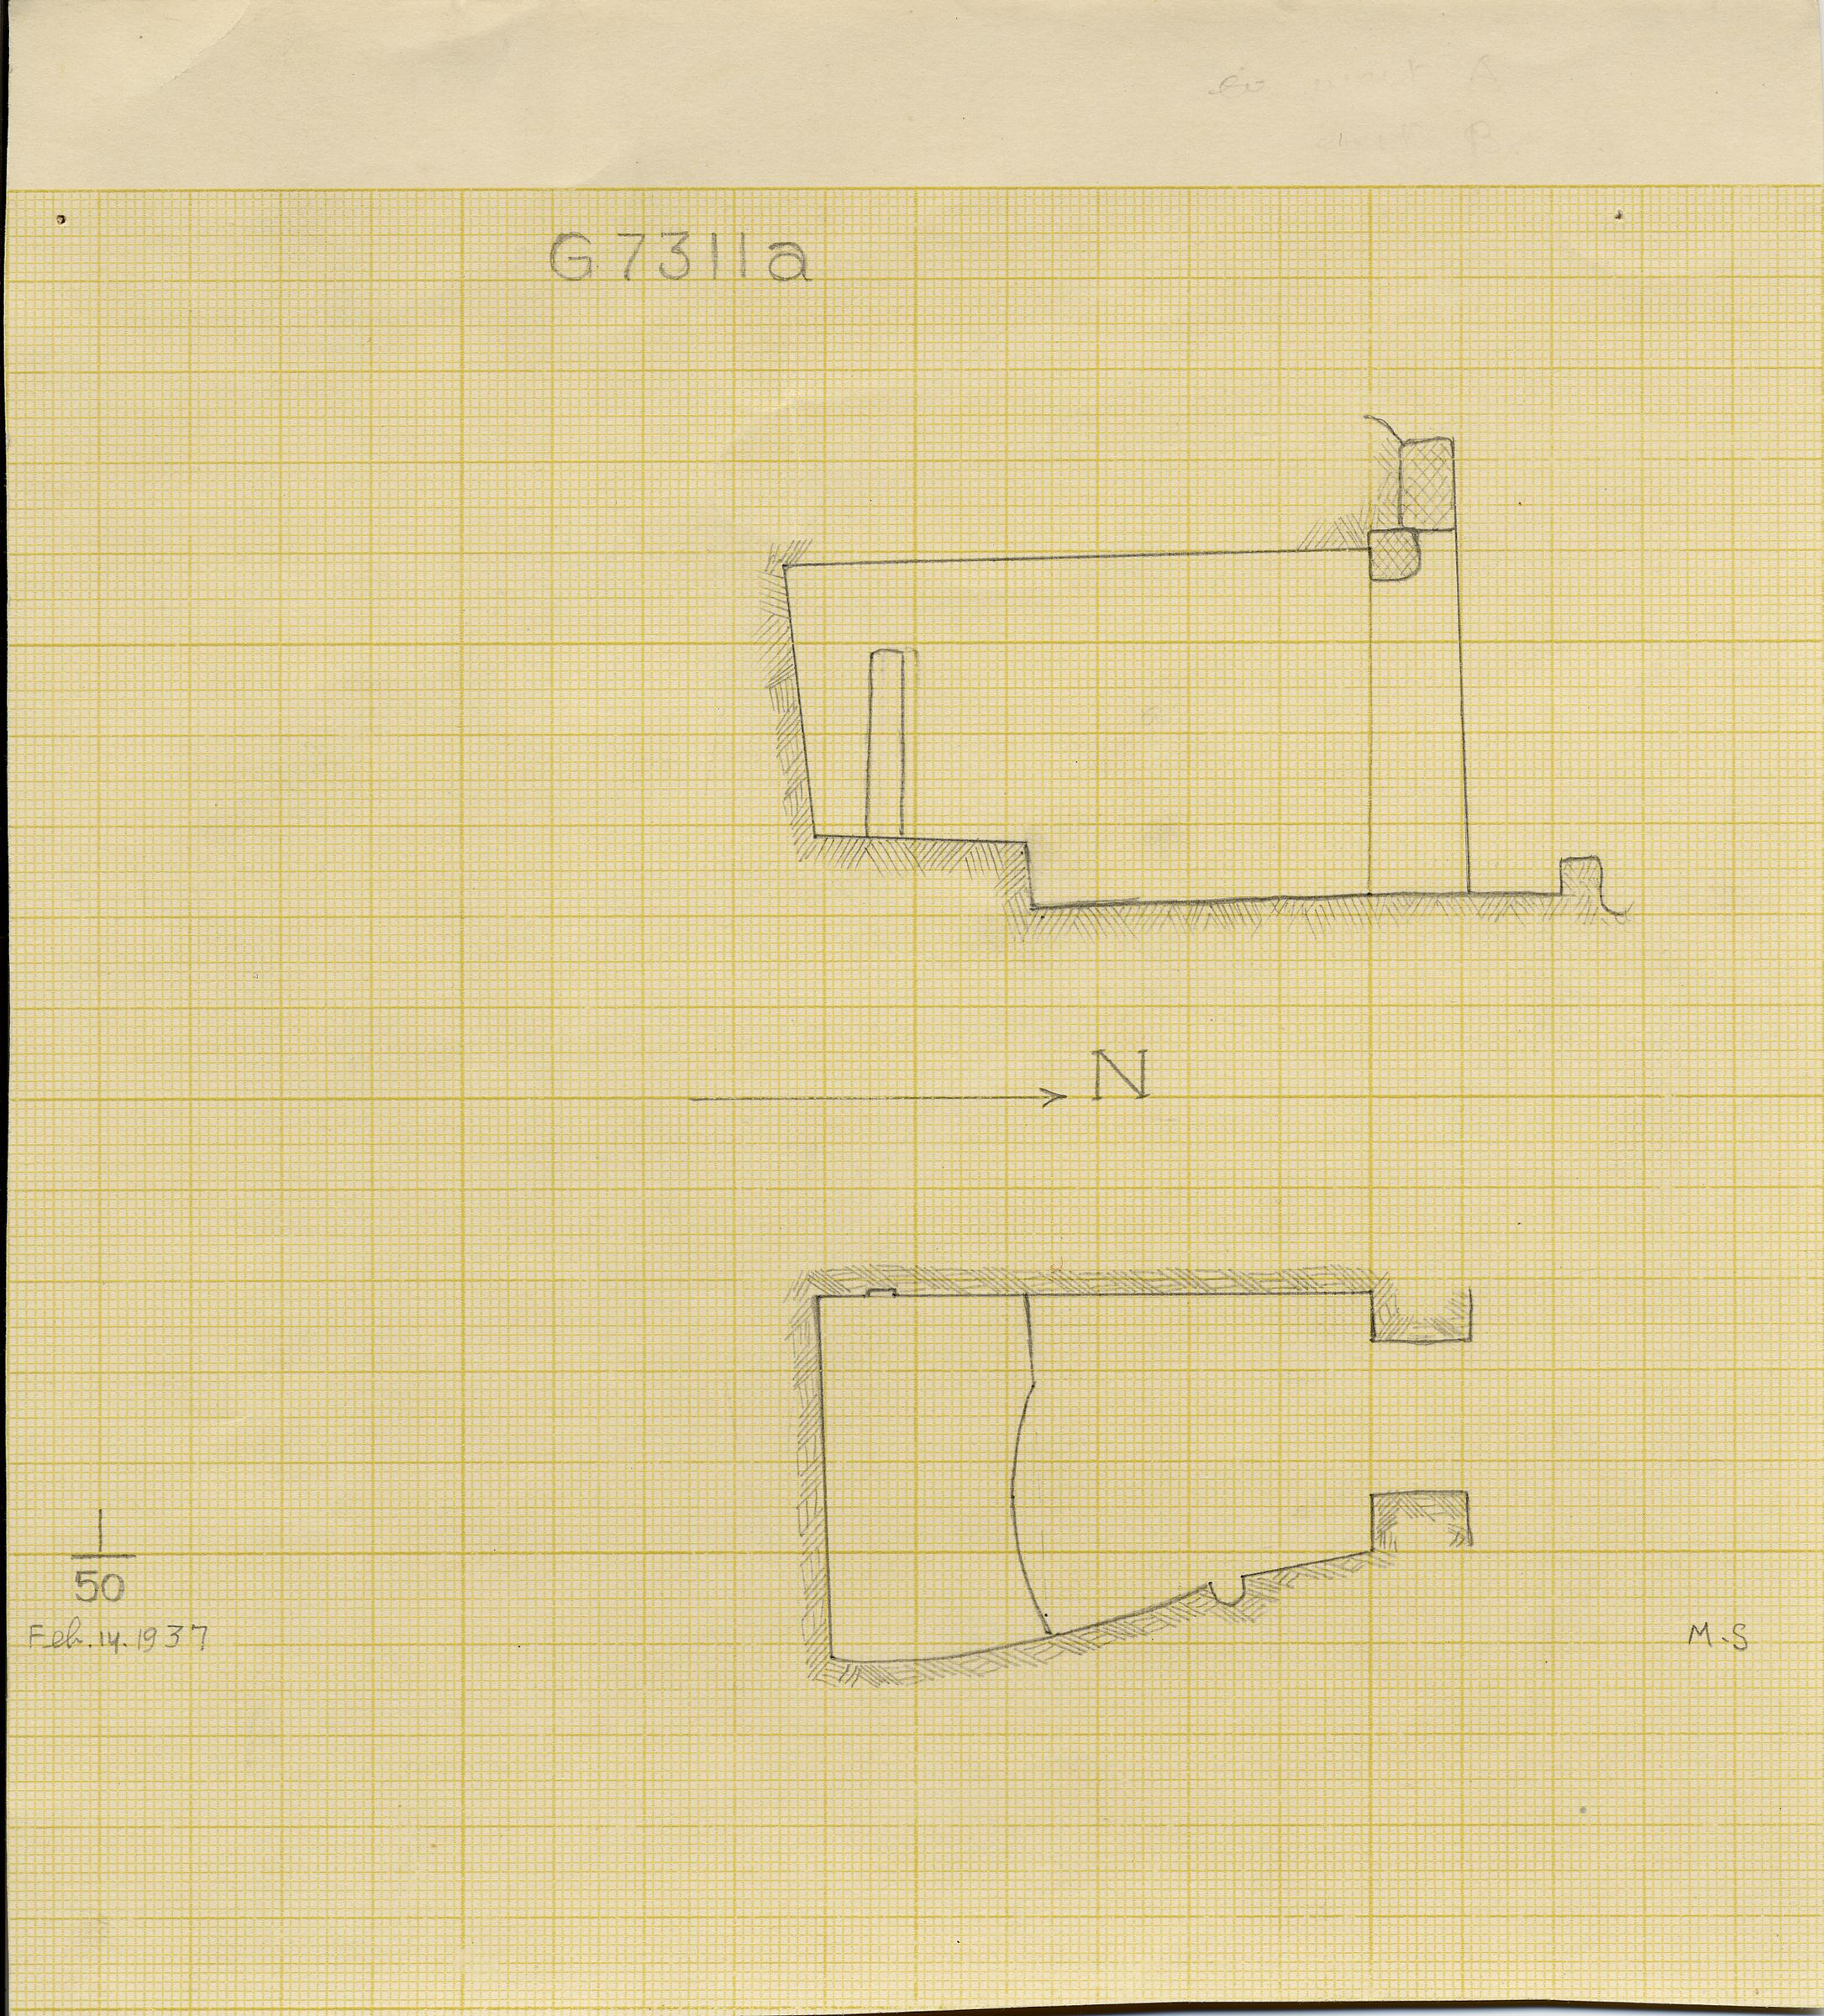 Maps and plans: G 7311, Chapel a